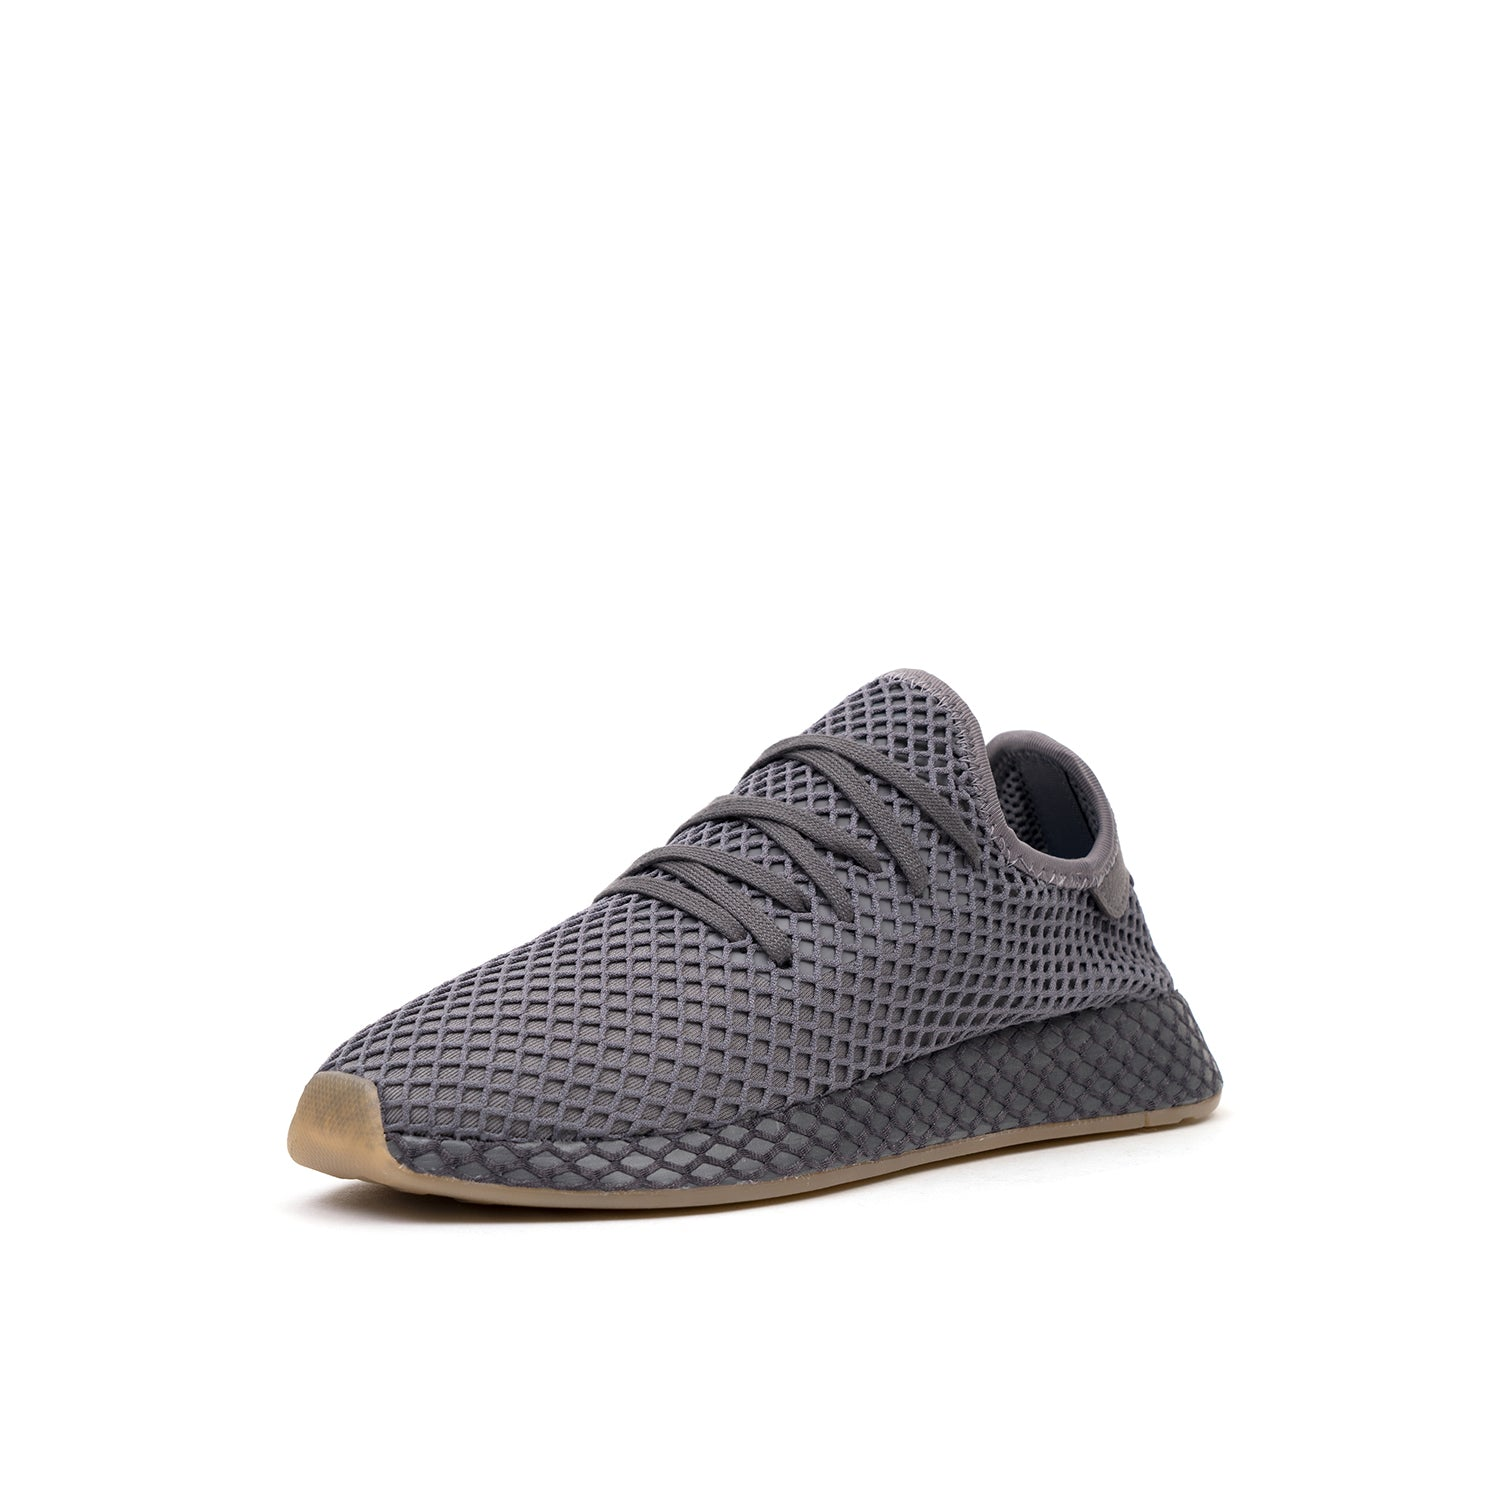 meet adc7a 4a3c4 adidas Originals Deerupt Runner Grey Three